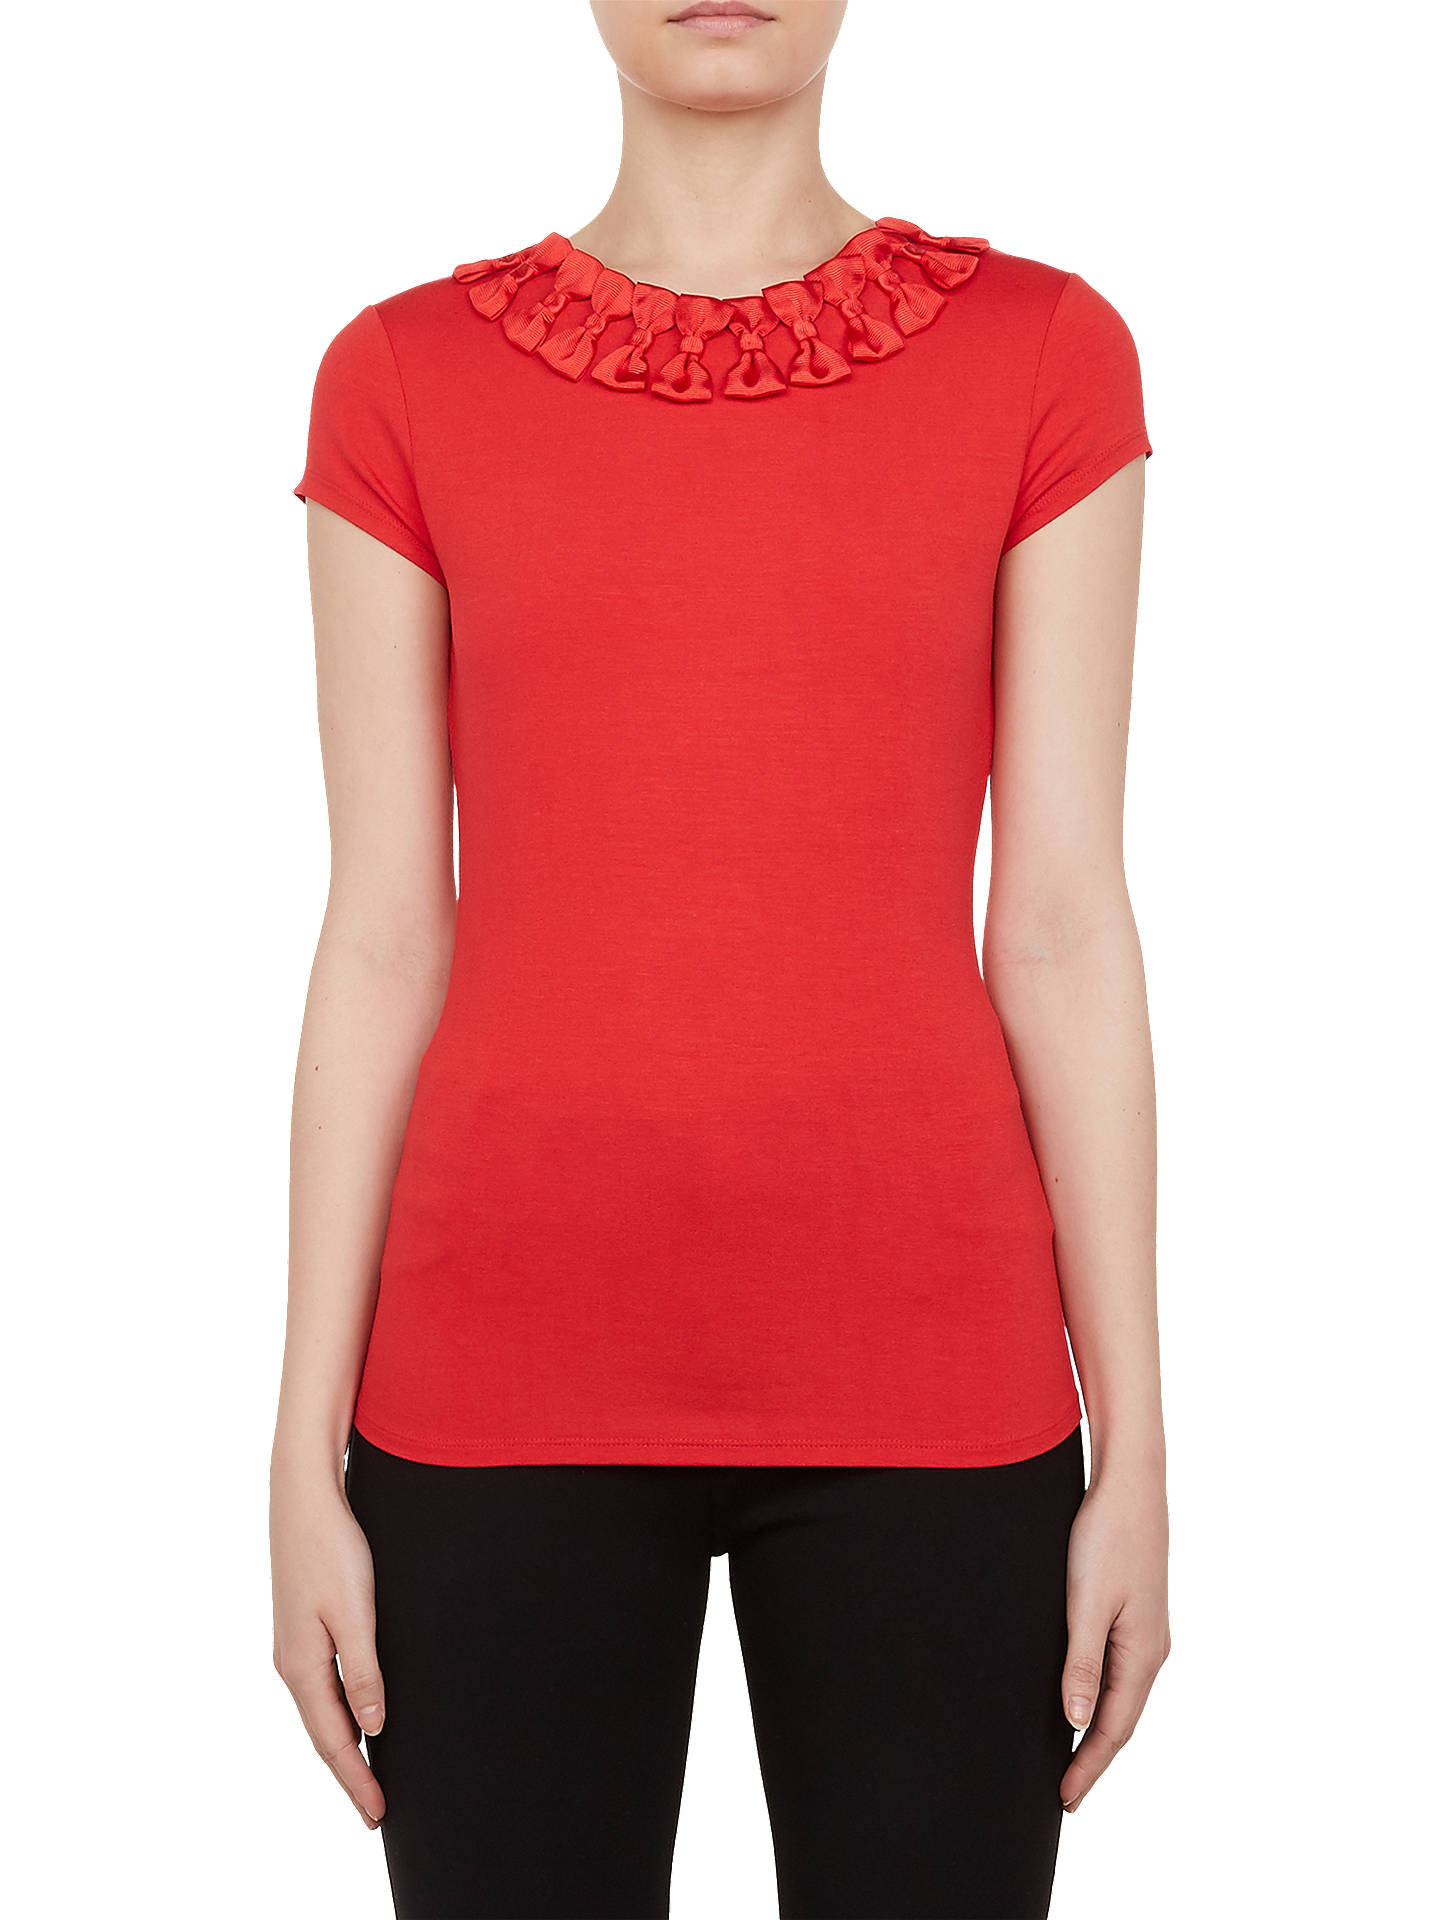 4c972a0070a59c Ted Baker Charre Bow Trim T-Shirt at John Lewis   Partners